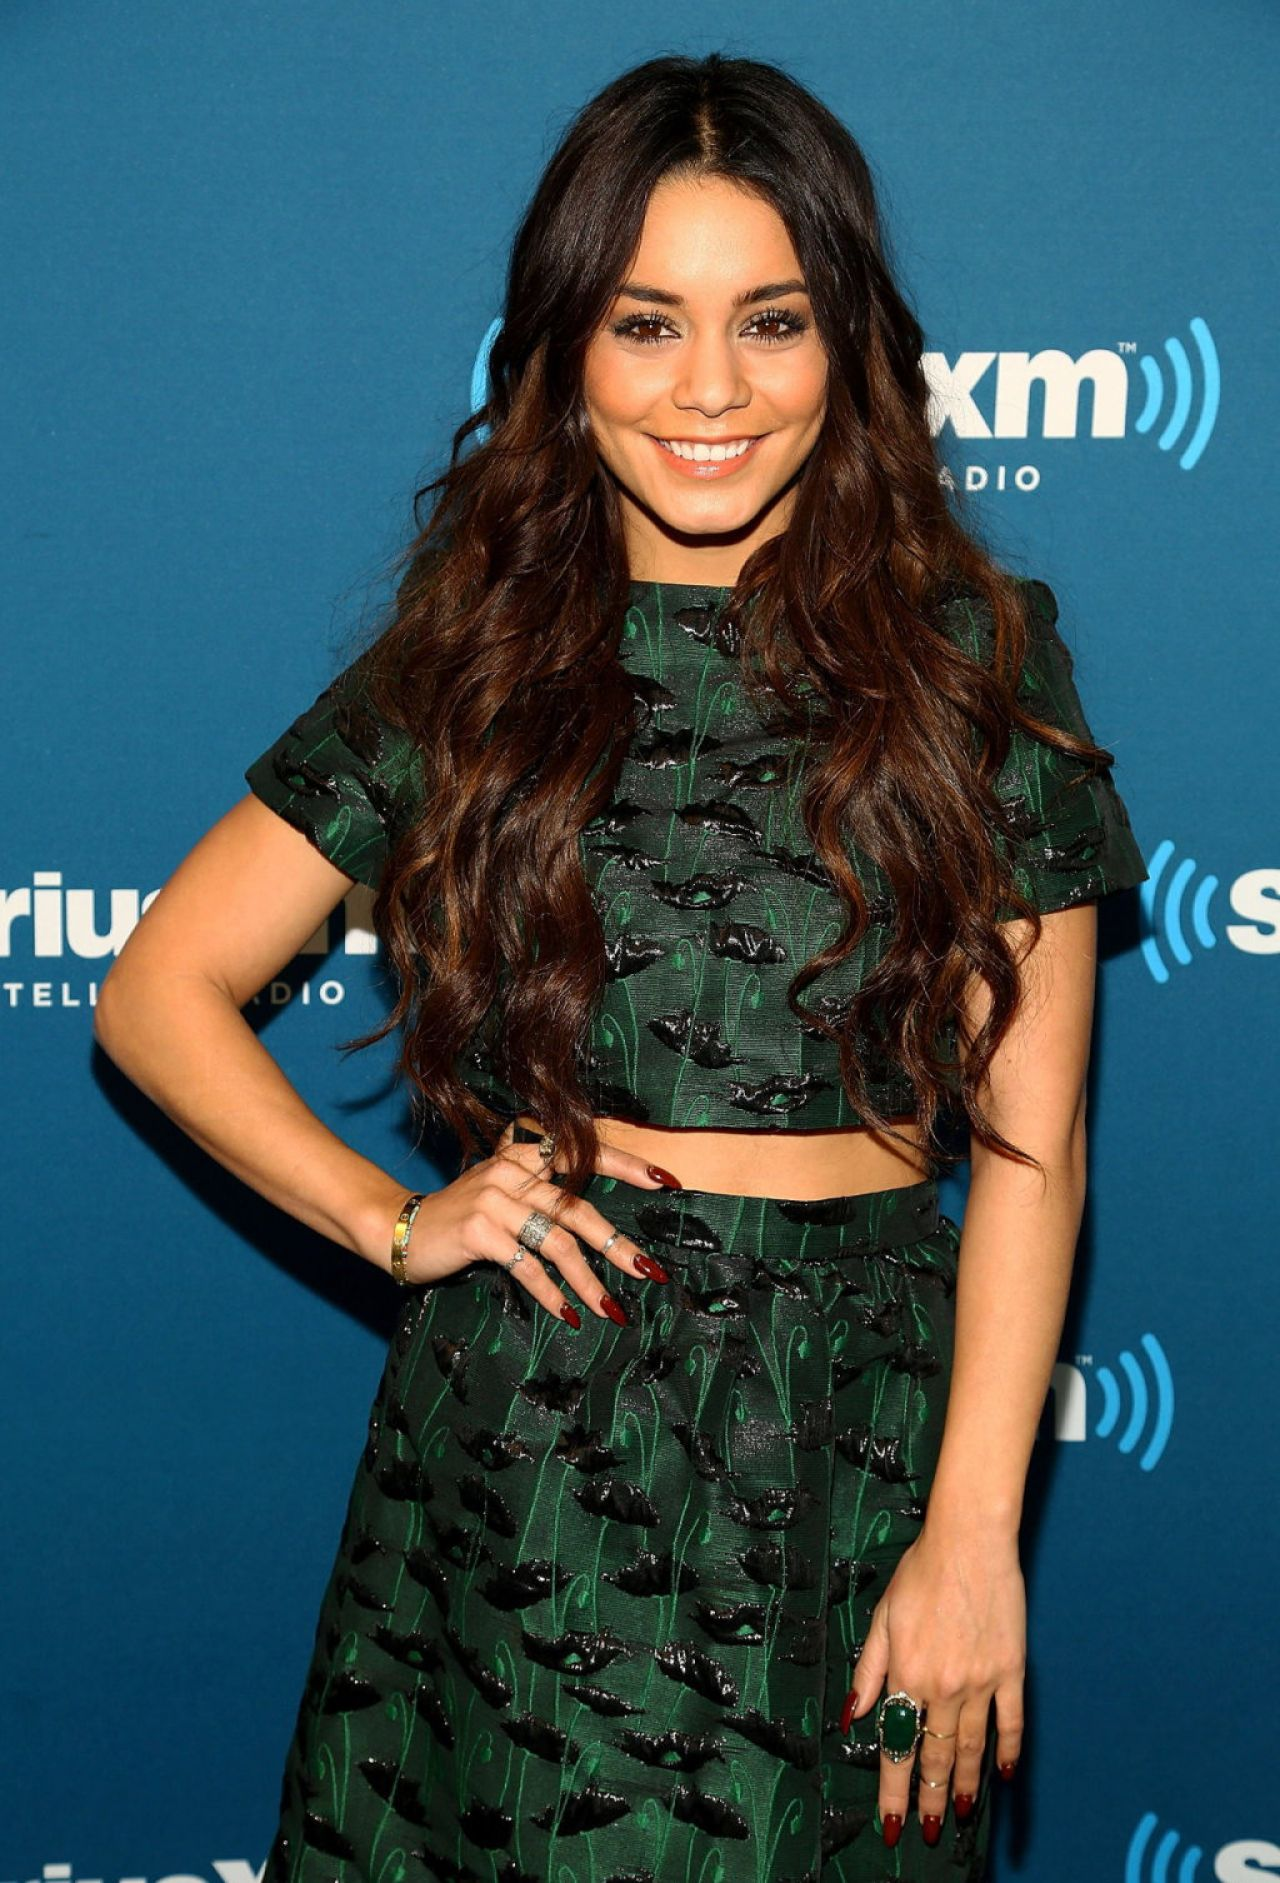 Vanessa Hudgens - SiriusXM Studio in New York, January 2014